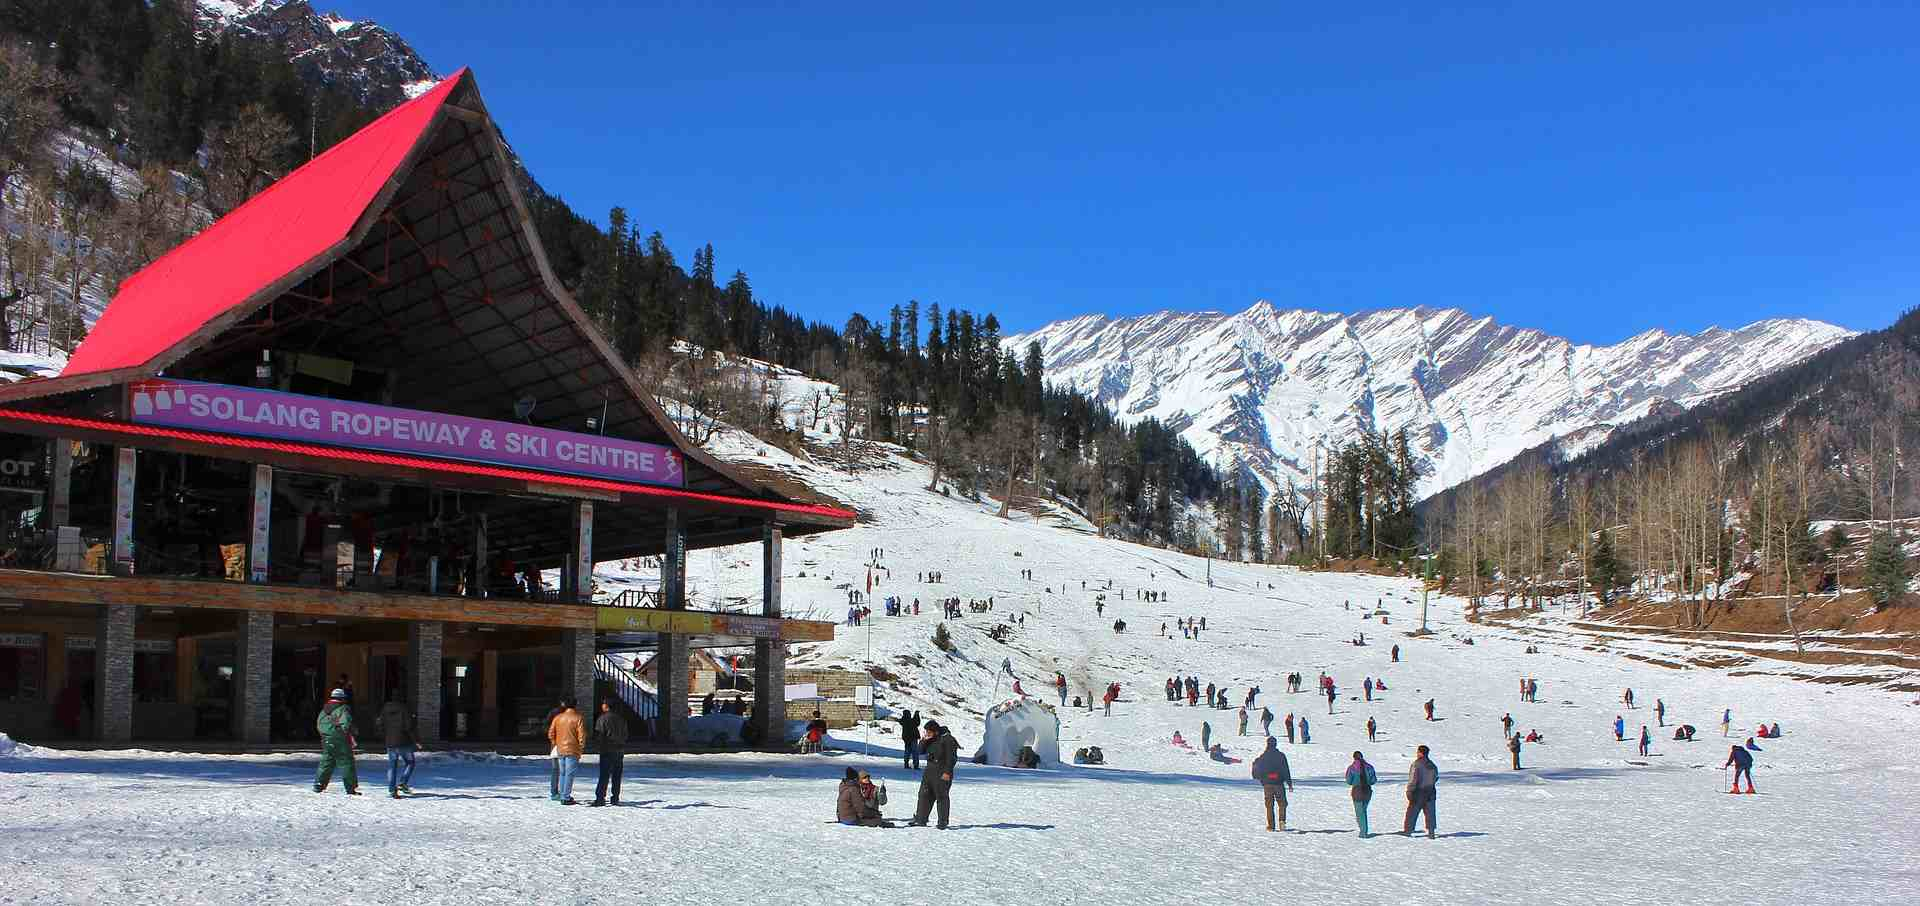 Place to visit in India for Christmas - Manali